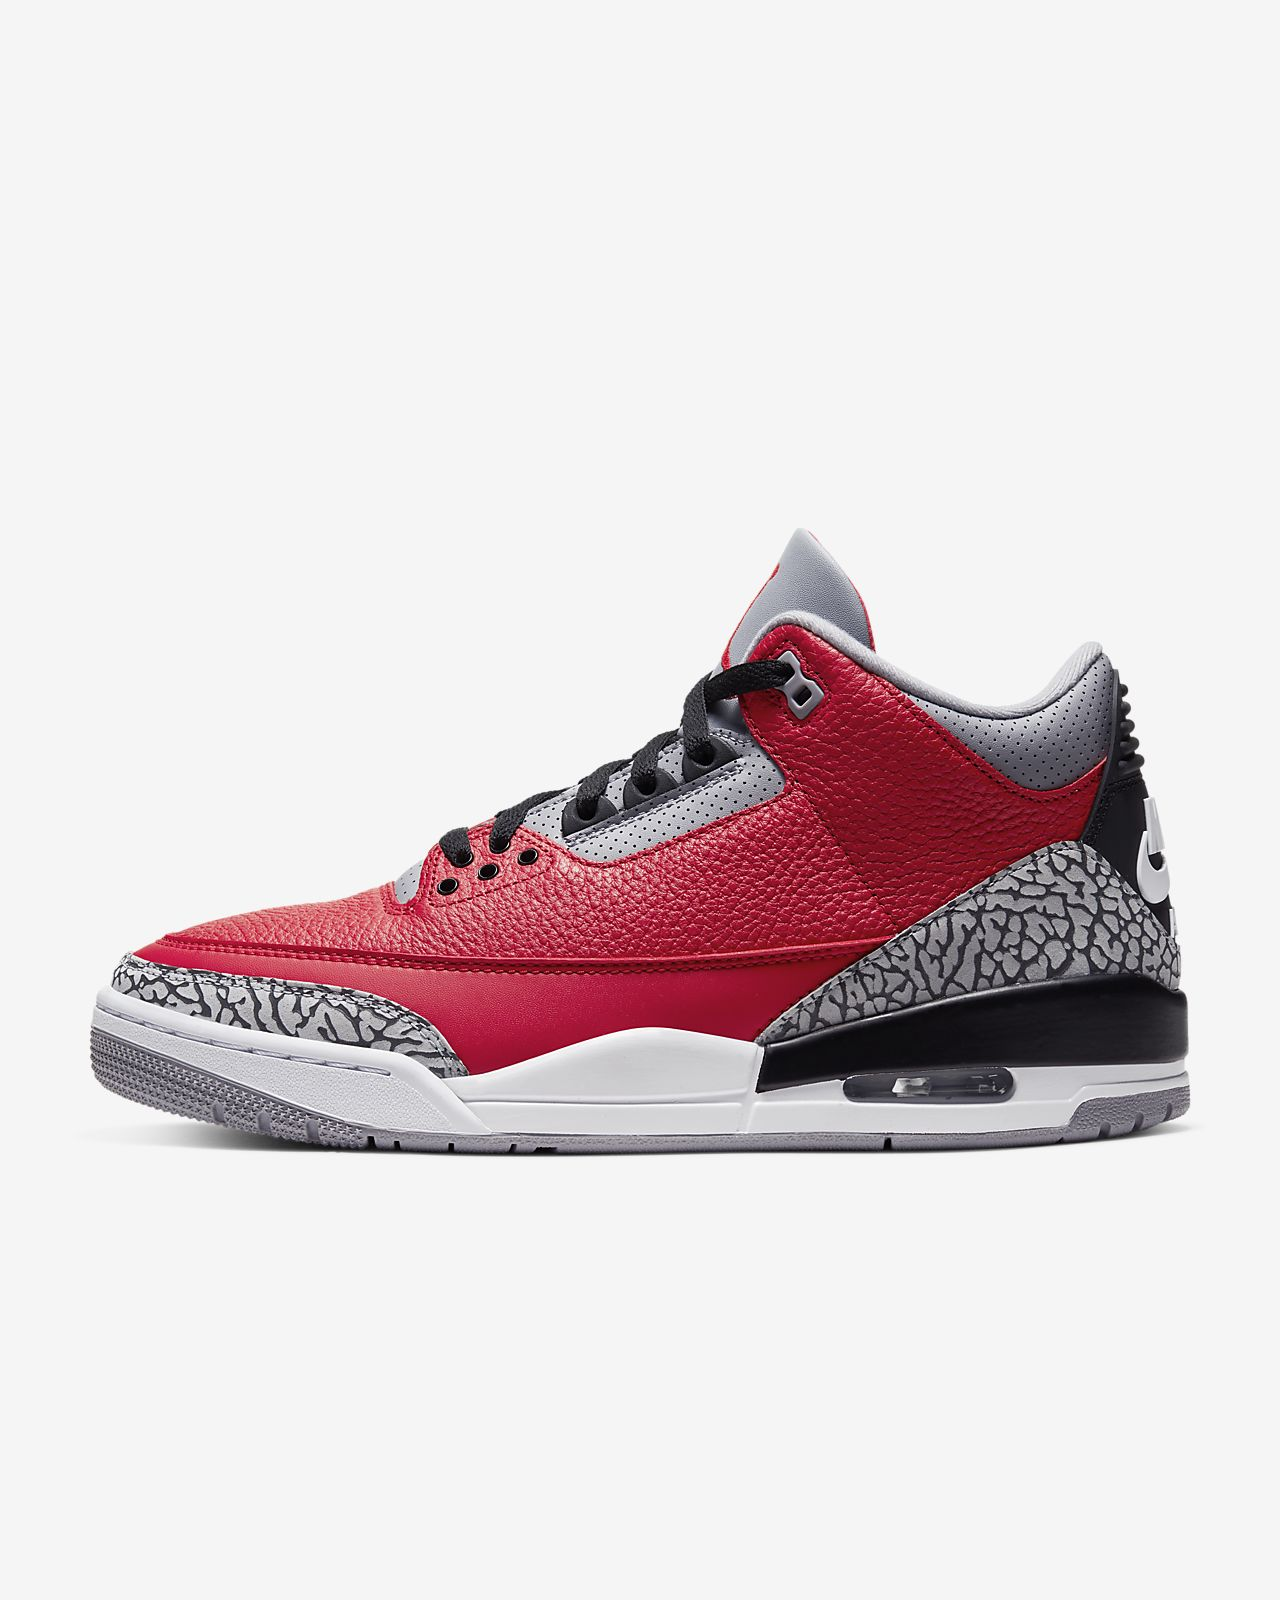 Jordans 3 Air Jordan 3 Retro SE Men's Shoe. Nike IN